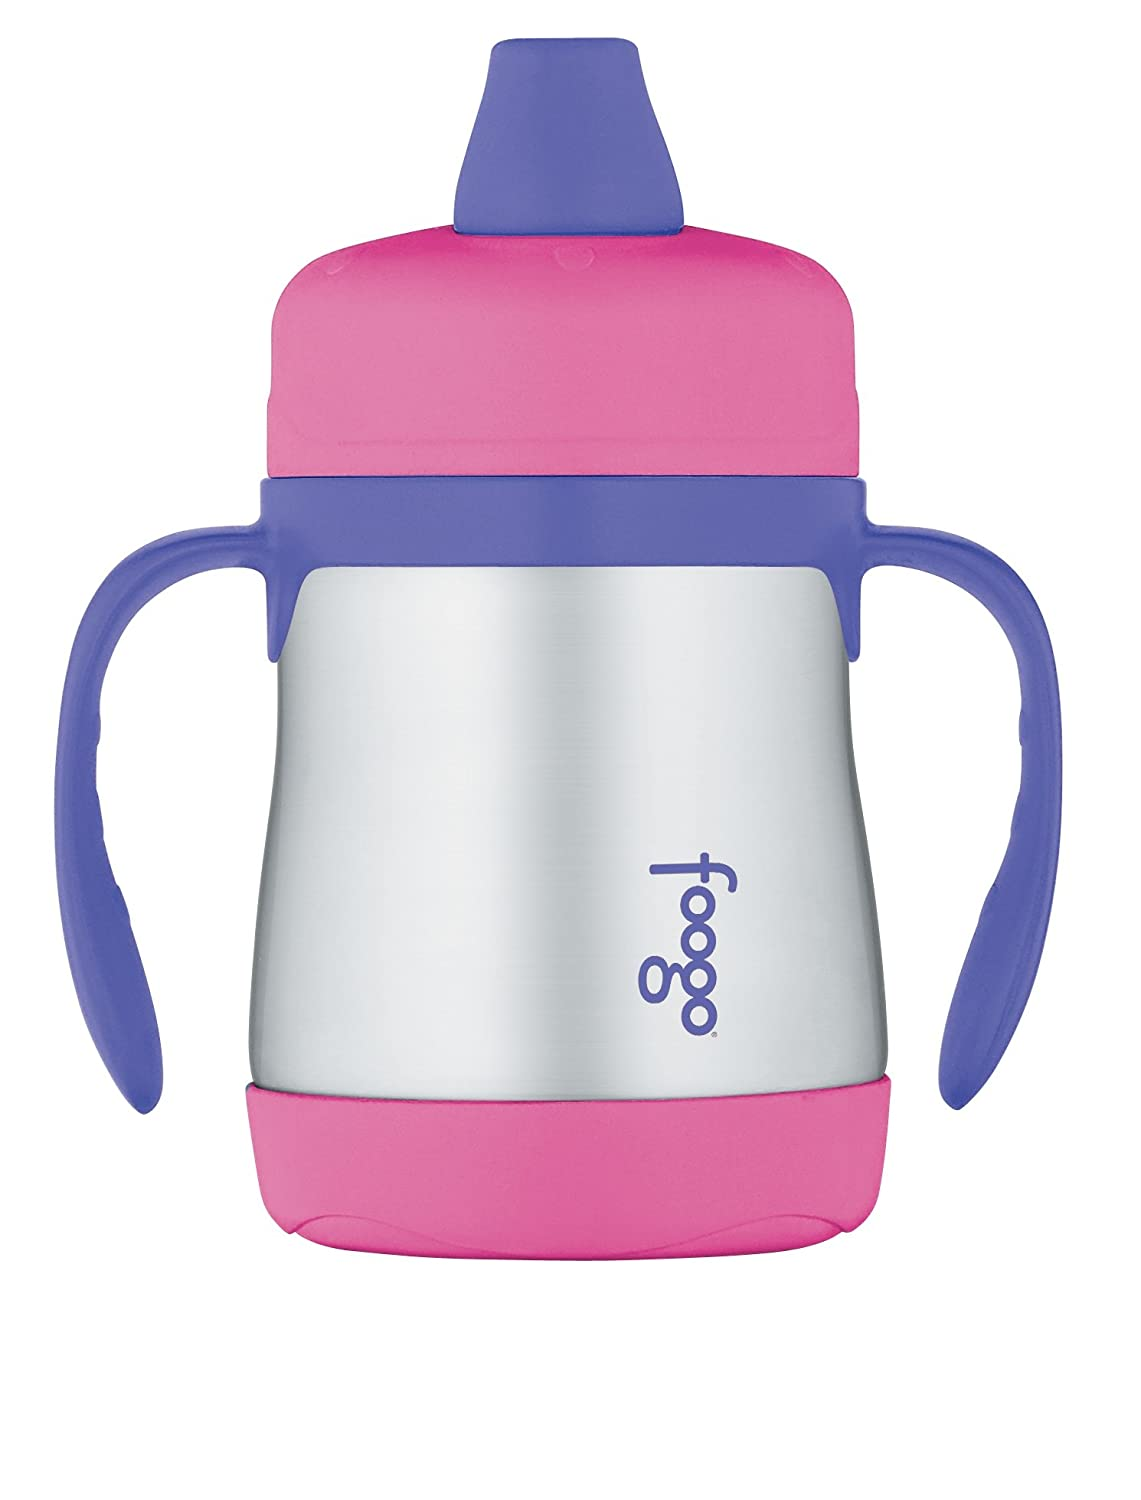 THERMOS Foogo Vacuum Insulated Stainless Steel Soft Spout Sippy Cup with Handles, Charcoal/Teal, 7 Ounce BS5004TS3